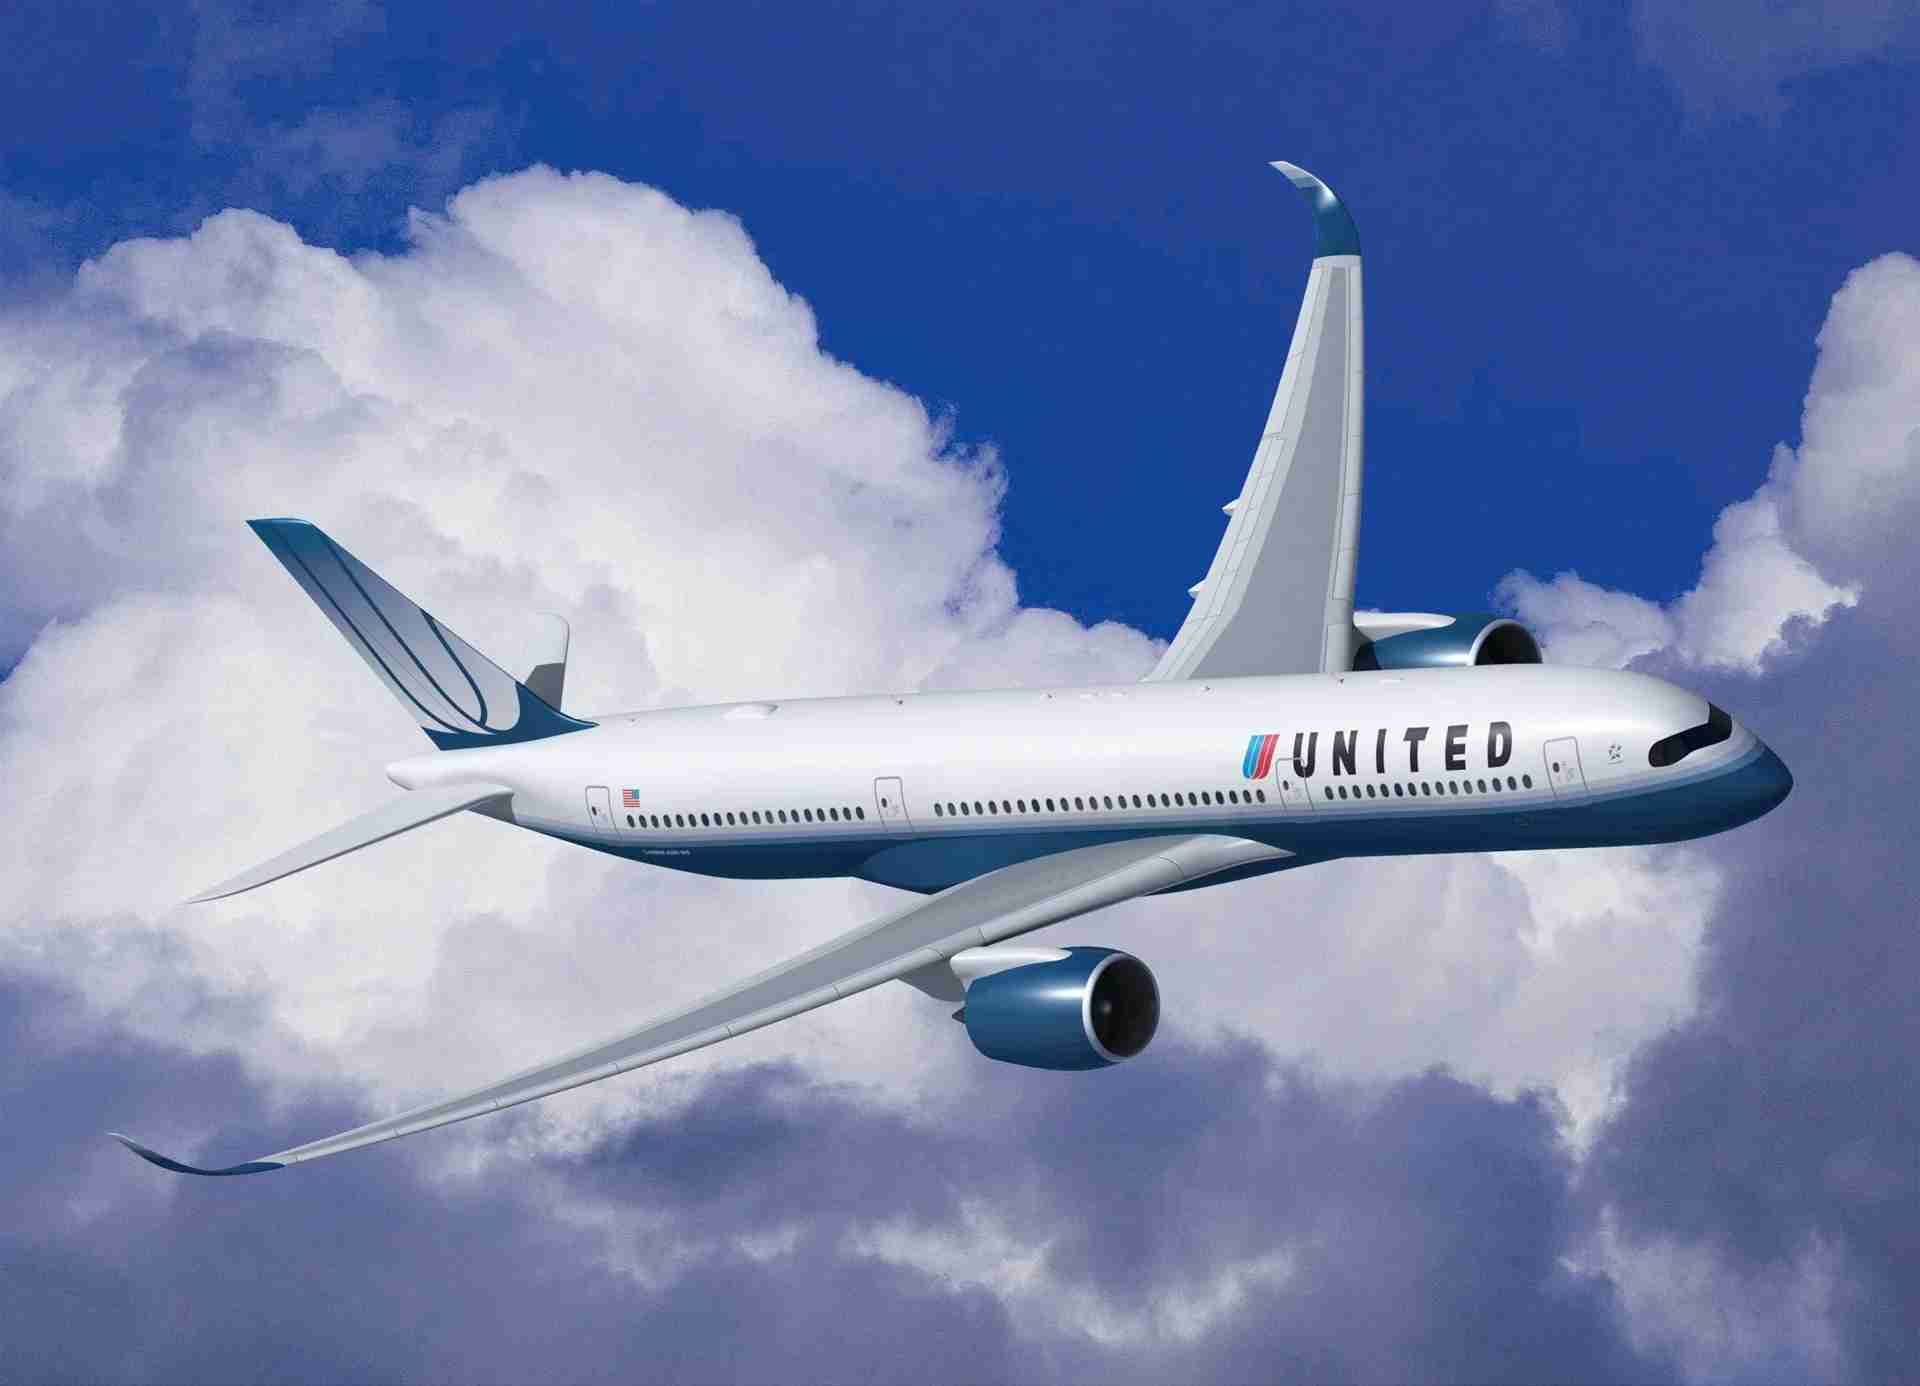 An early rendering of a United Airlines A350-900 in 2009. (Image courtesy of Airbus)